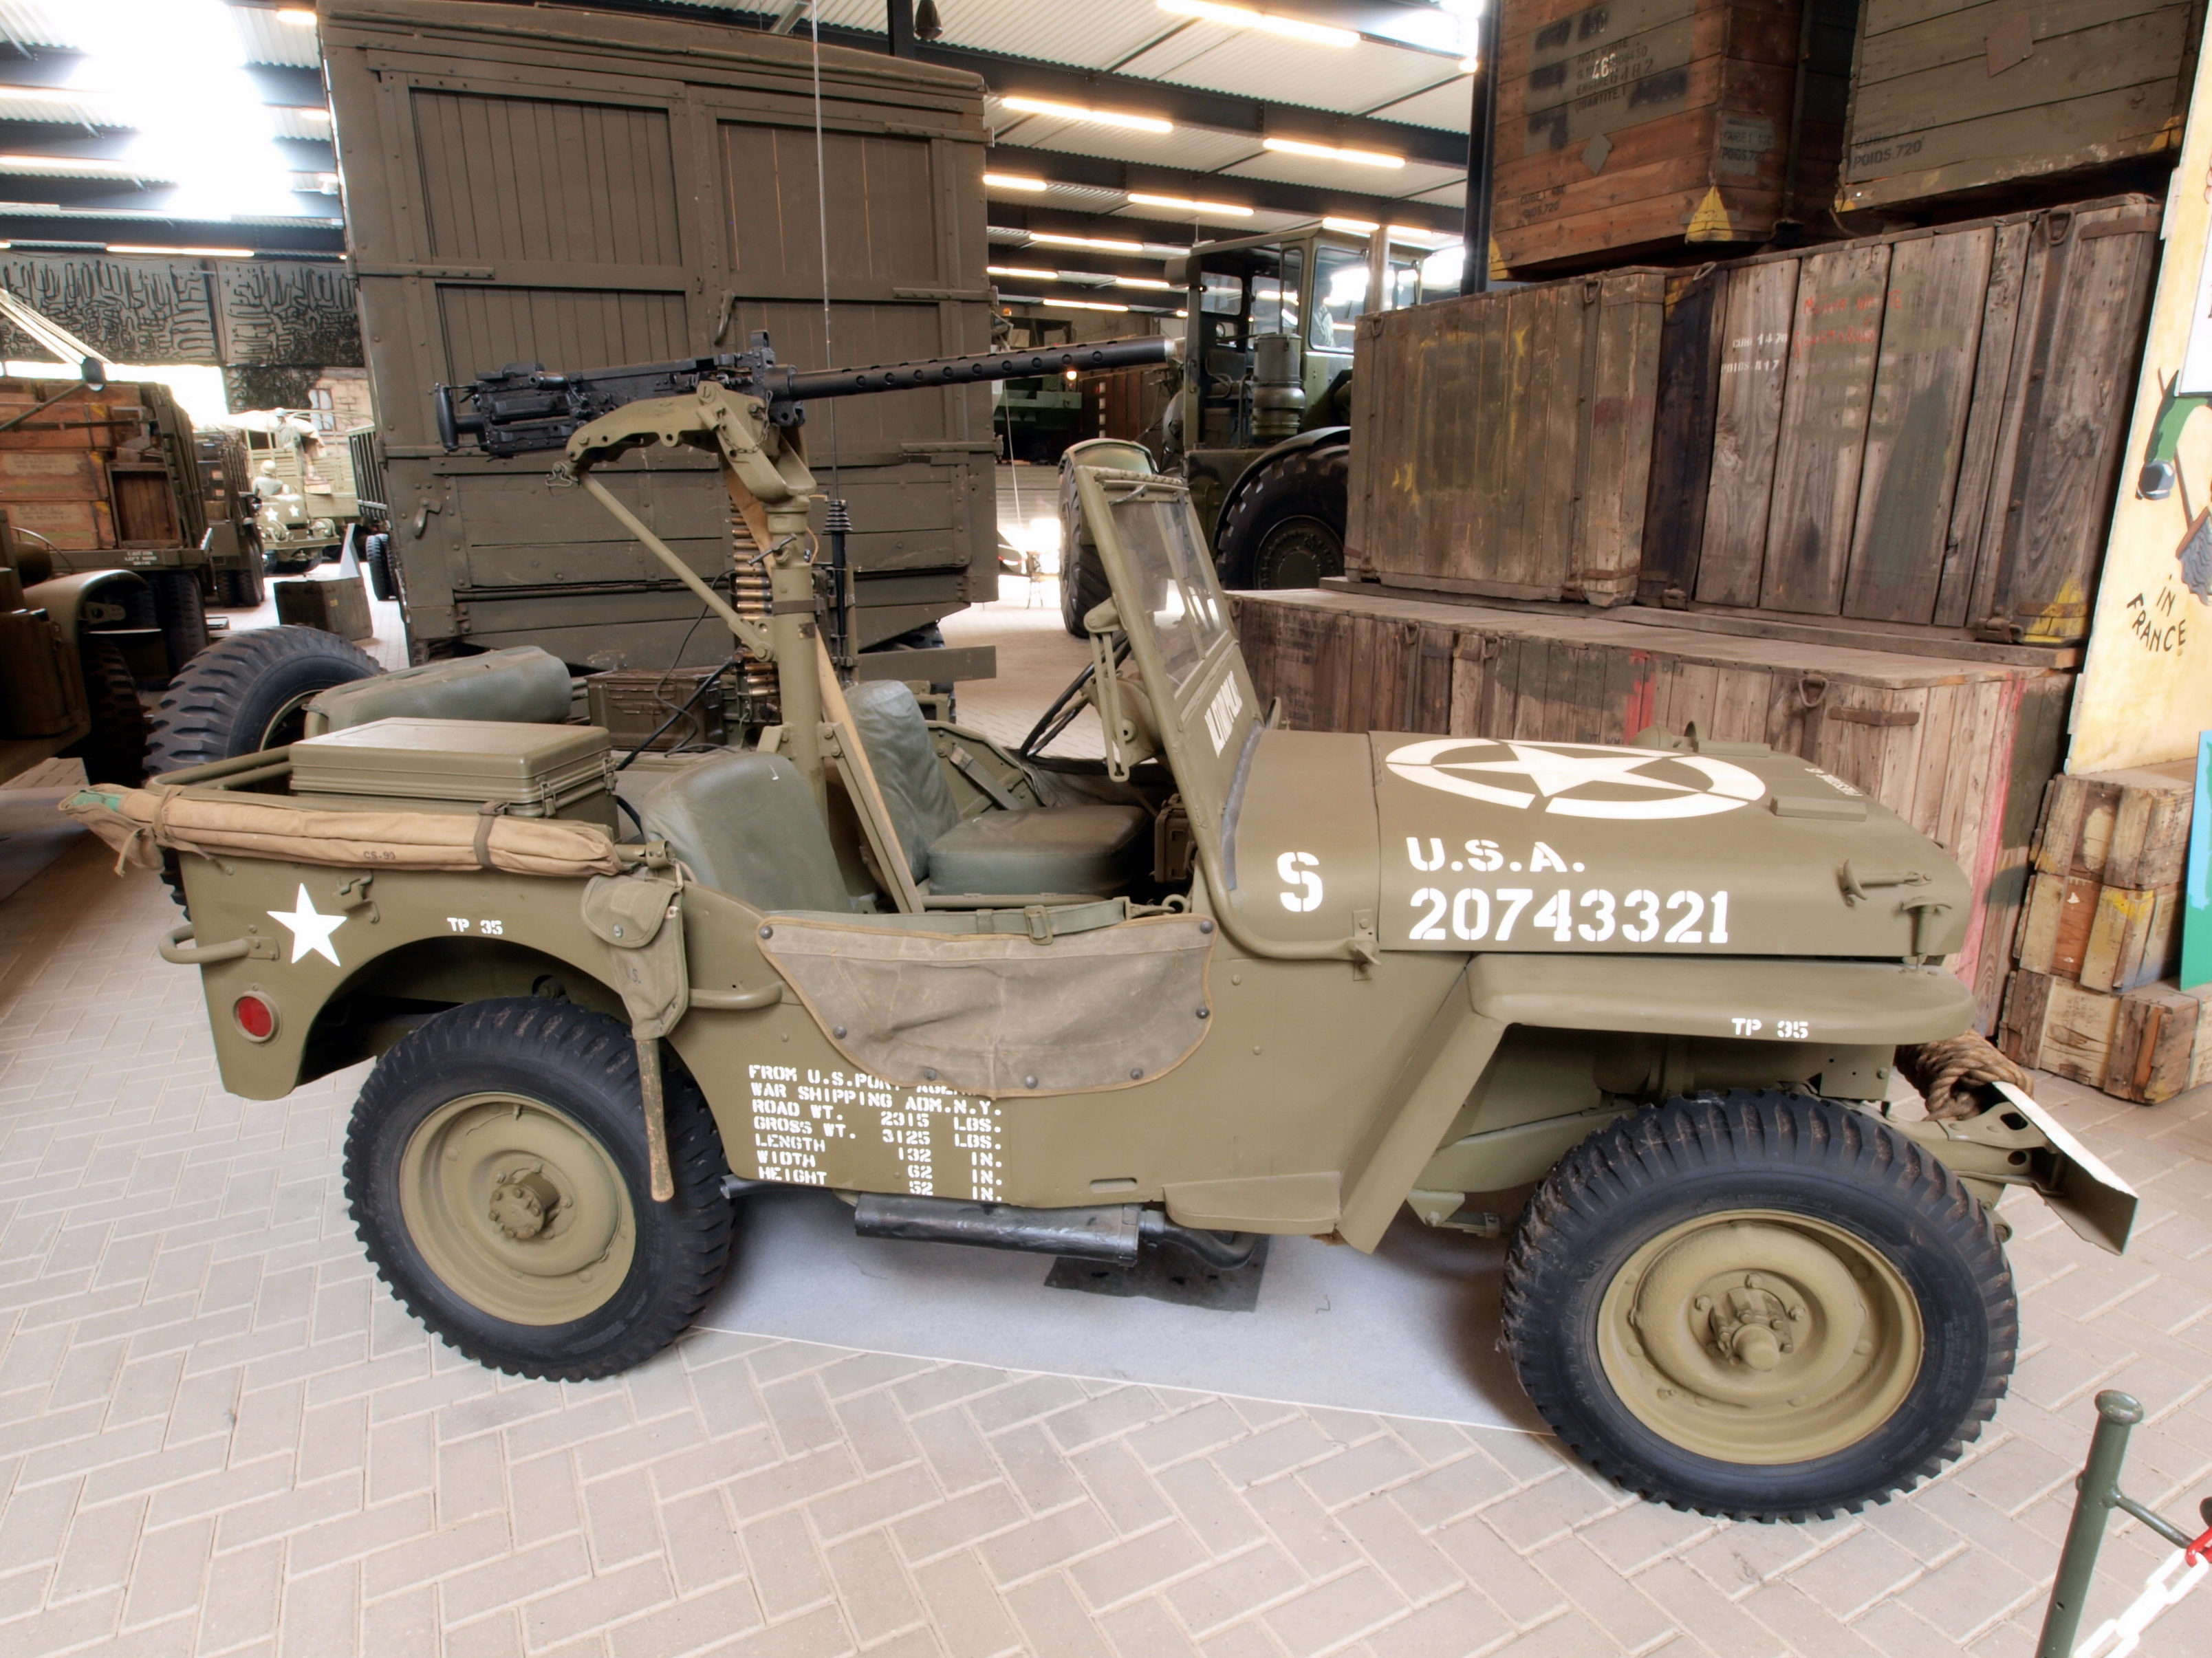 File G 503 Ford Gpw Command Amp Reconnaissance Jpg